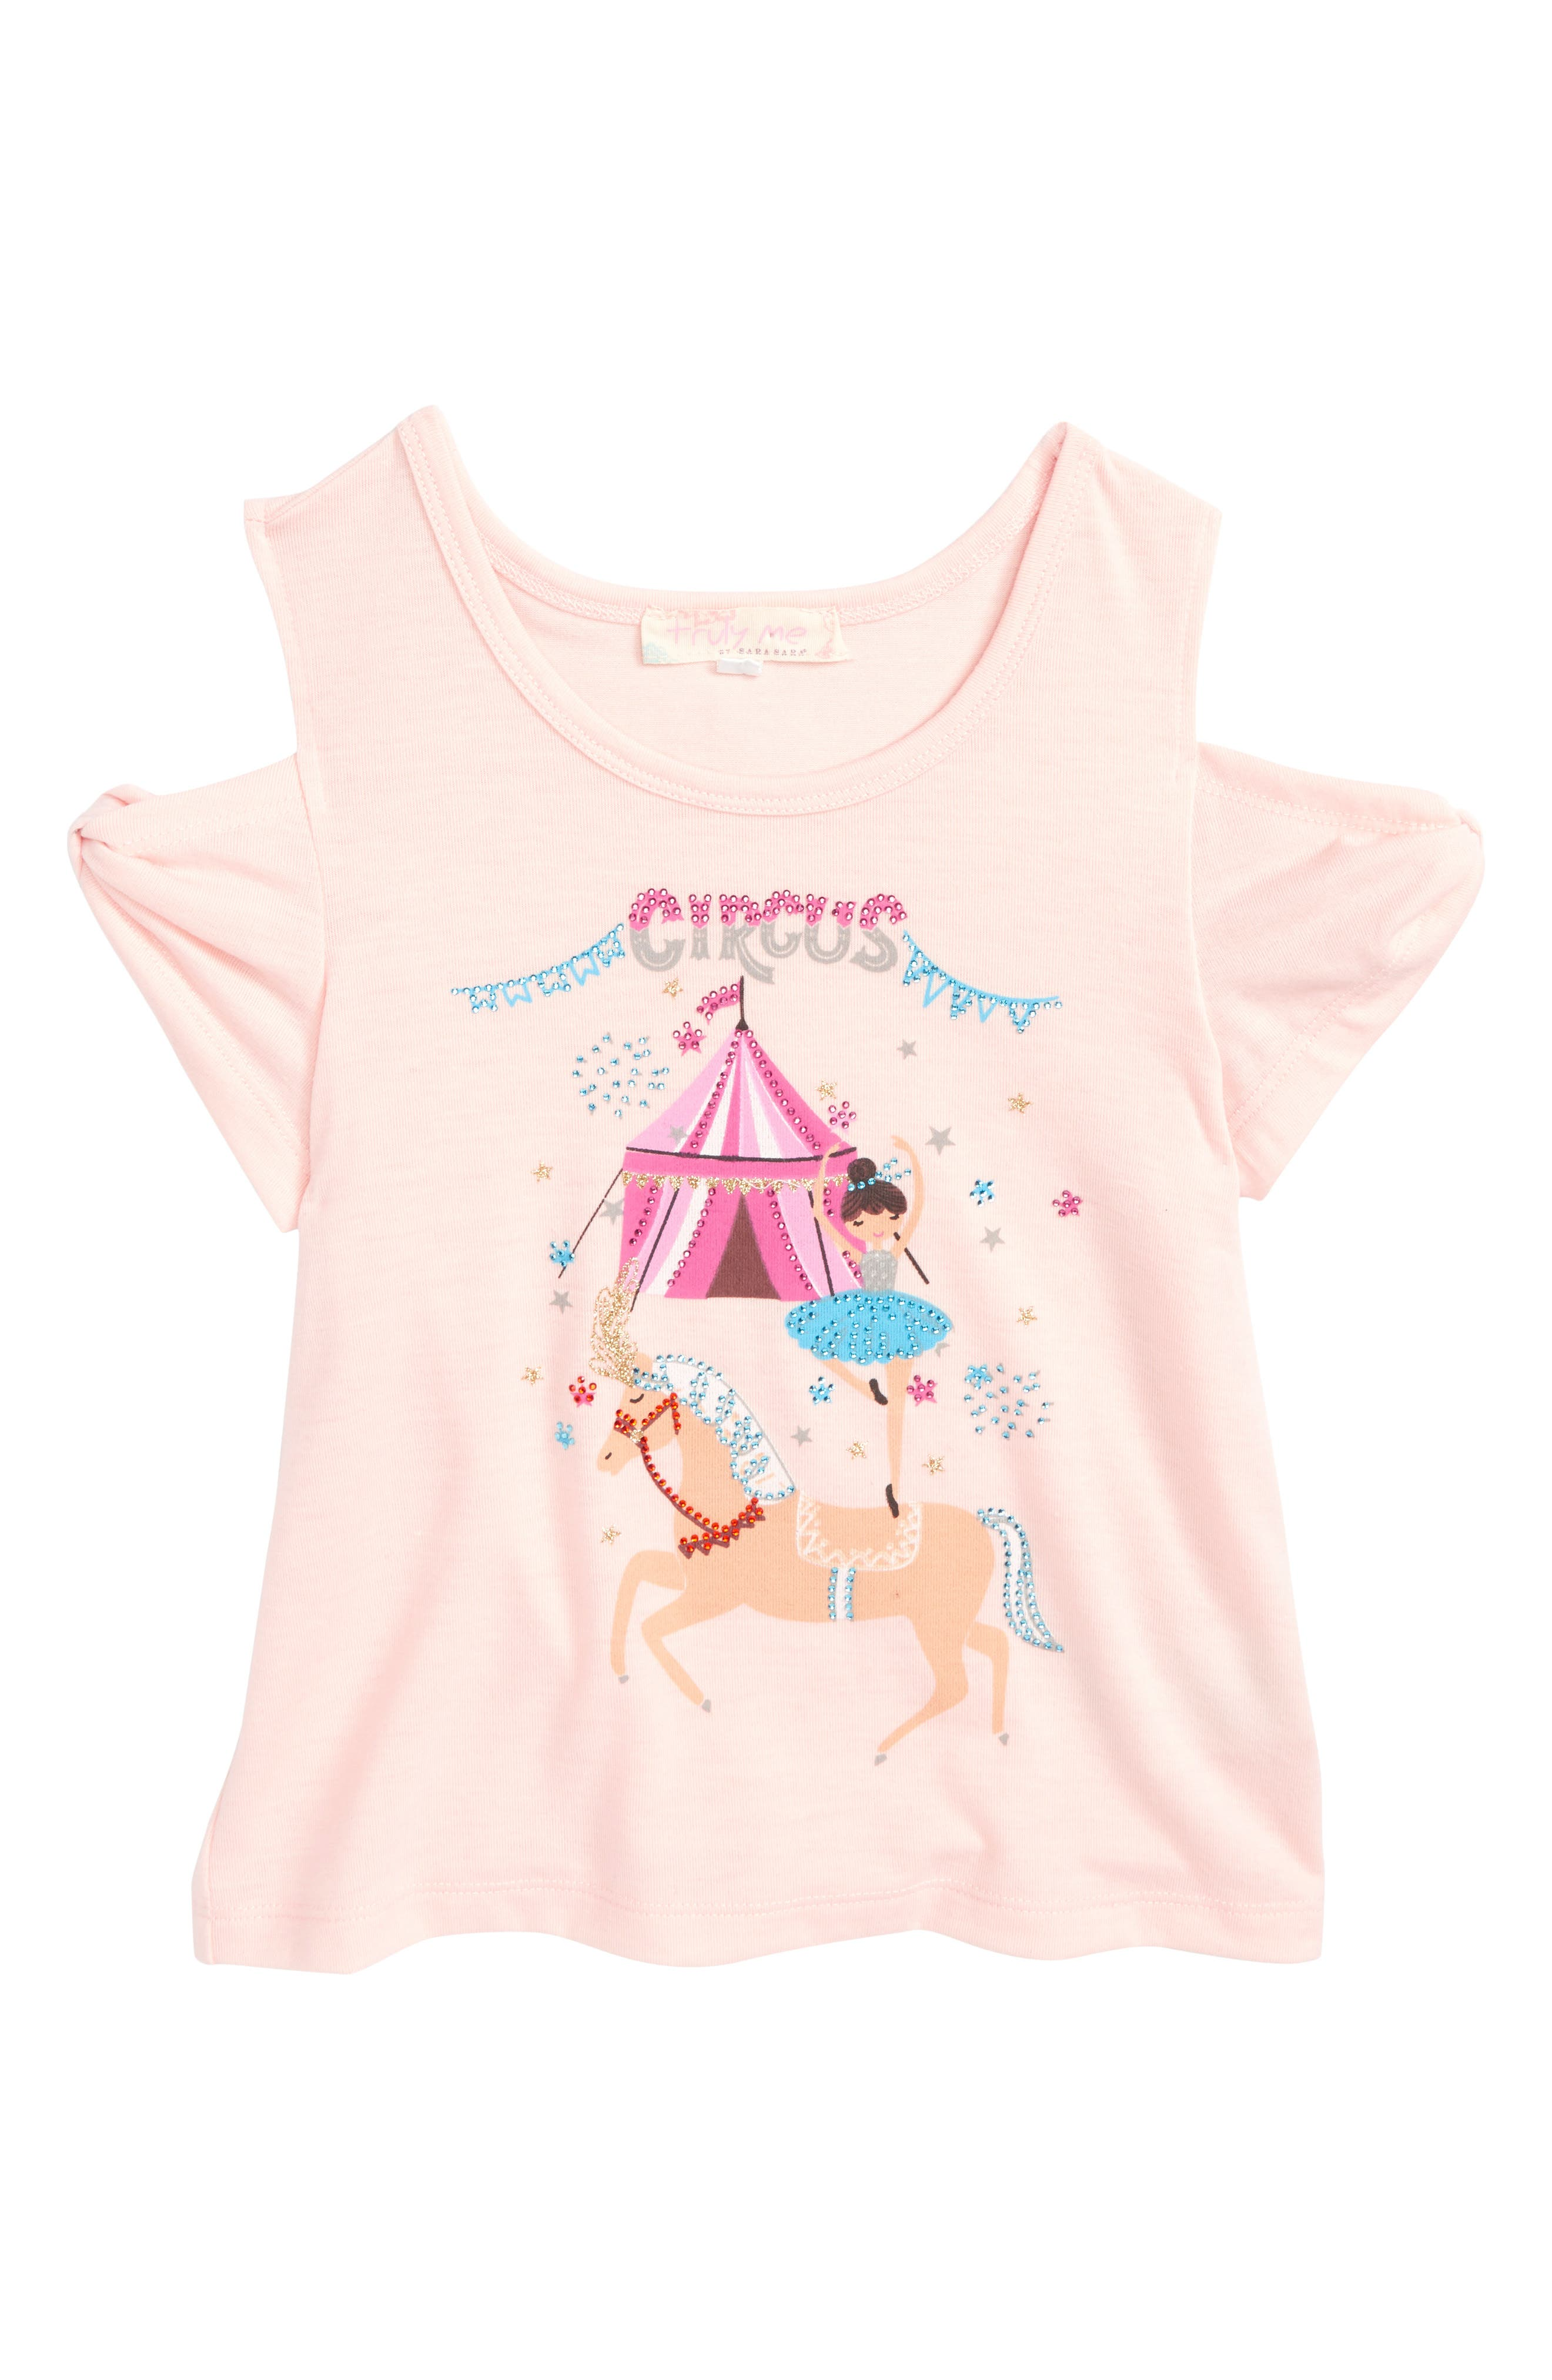 Truly Me Circus Graphic Cold Shoulder Tee (Toddler Girls & Little Girls)